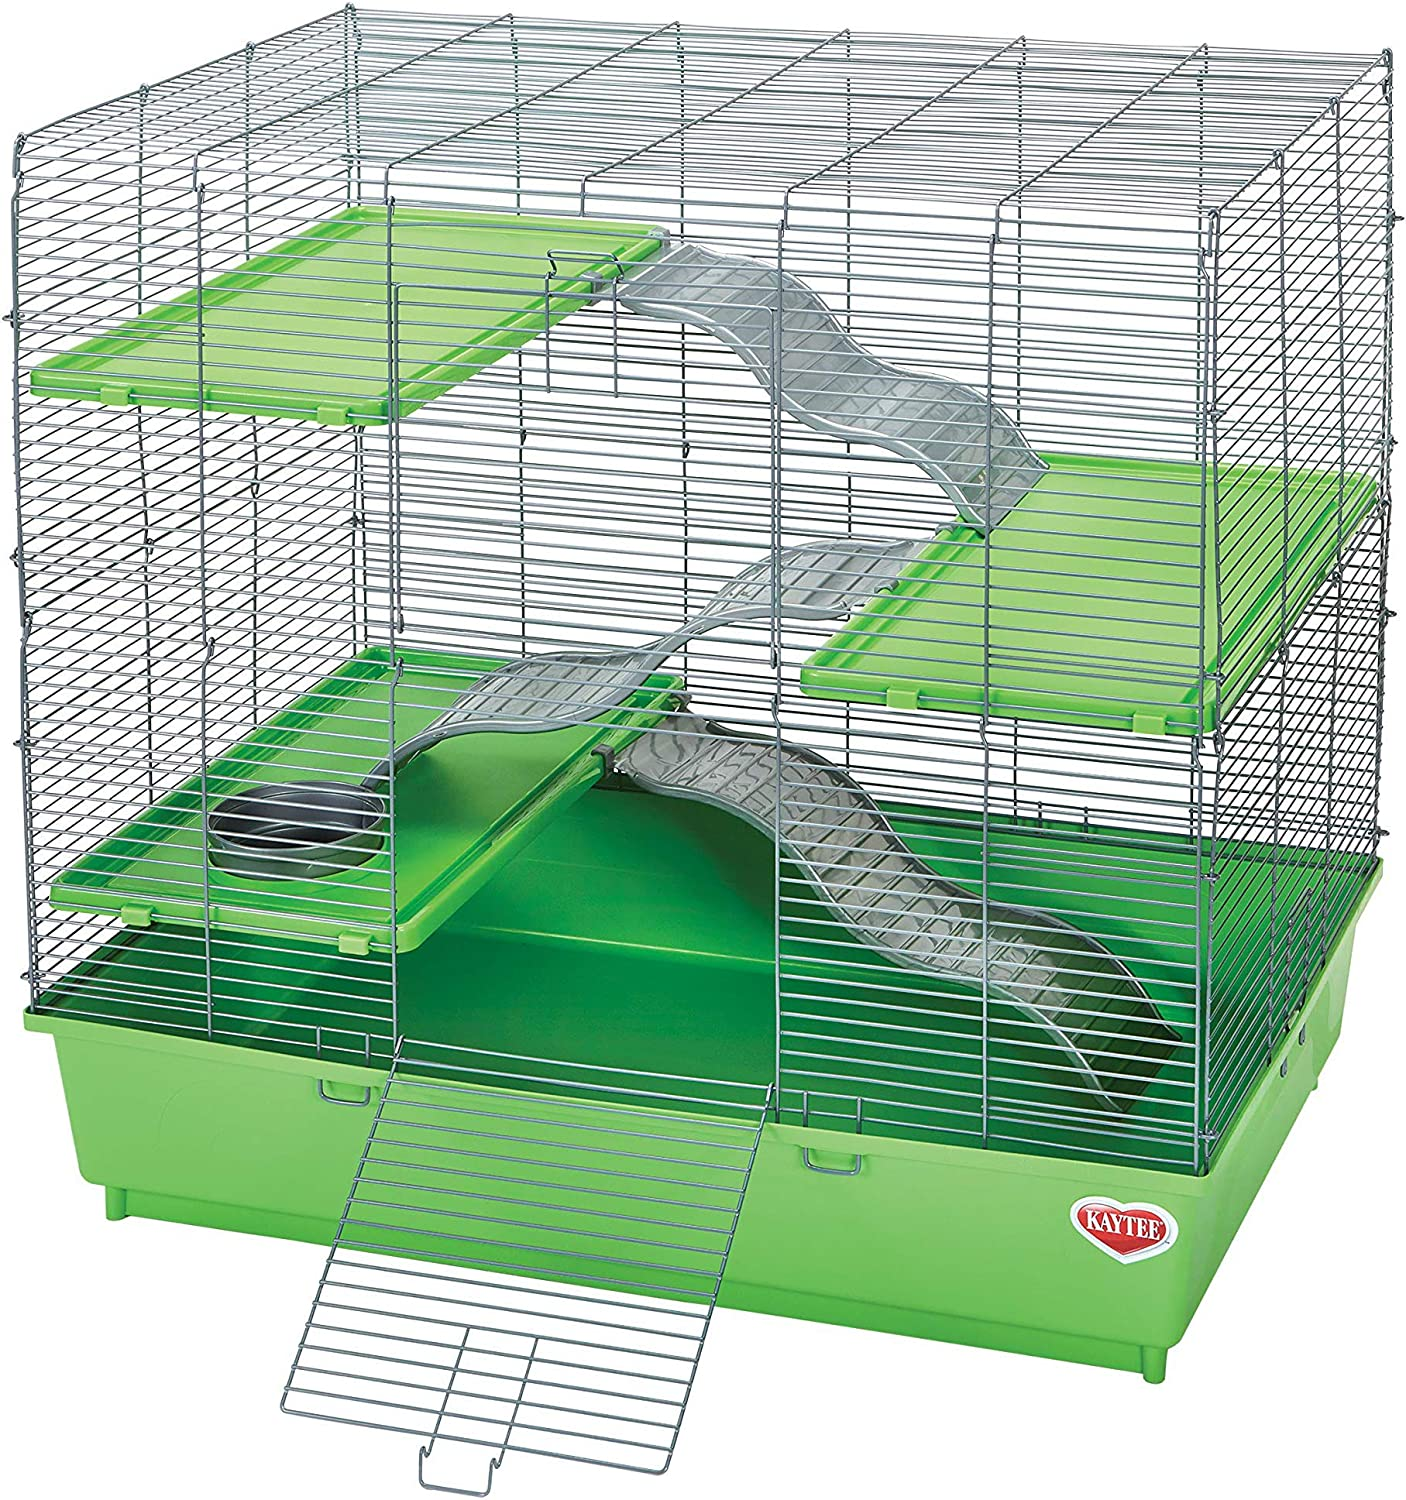 #8. Kaytee First Home Multi-Level Hamster Habitat